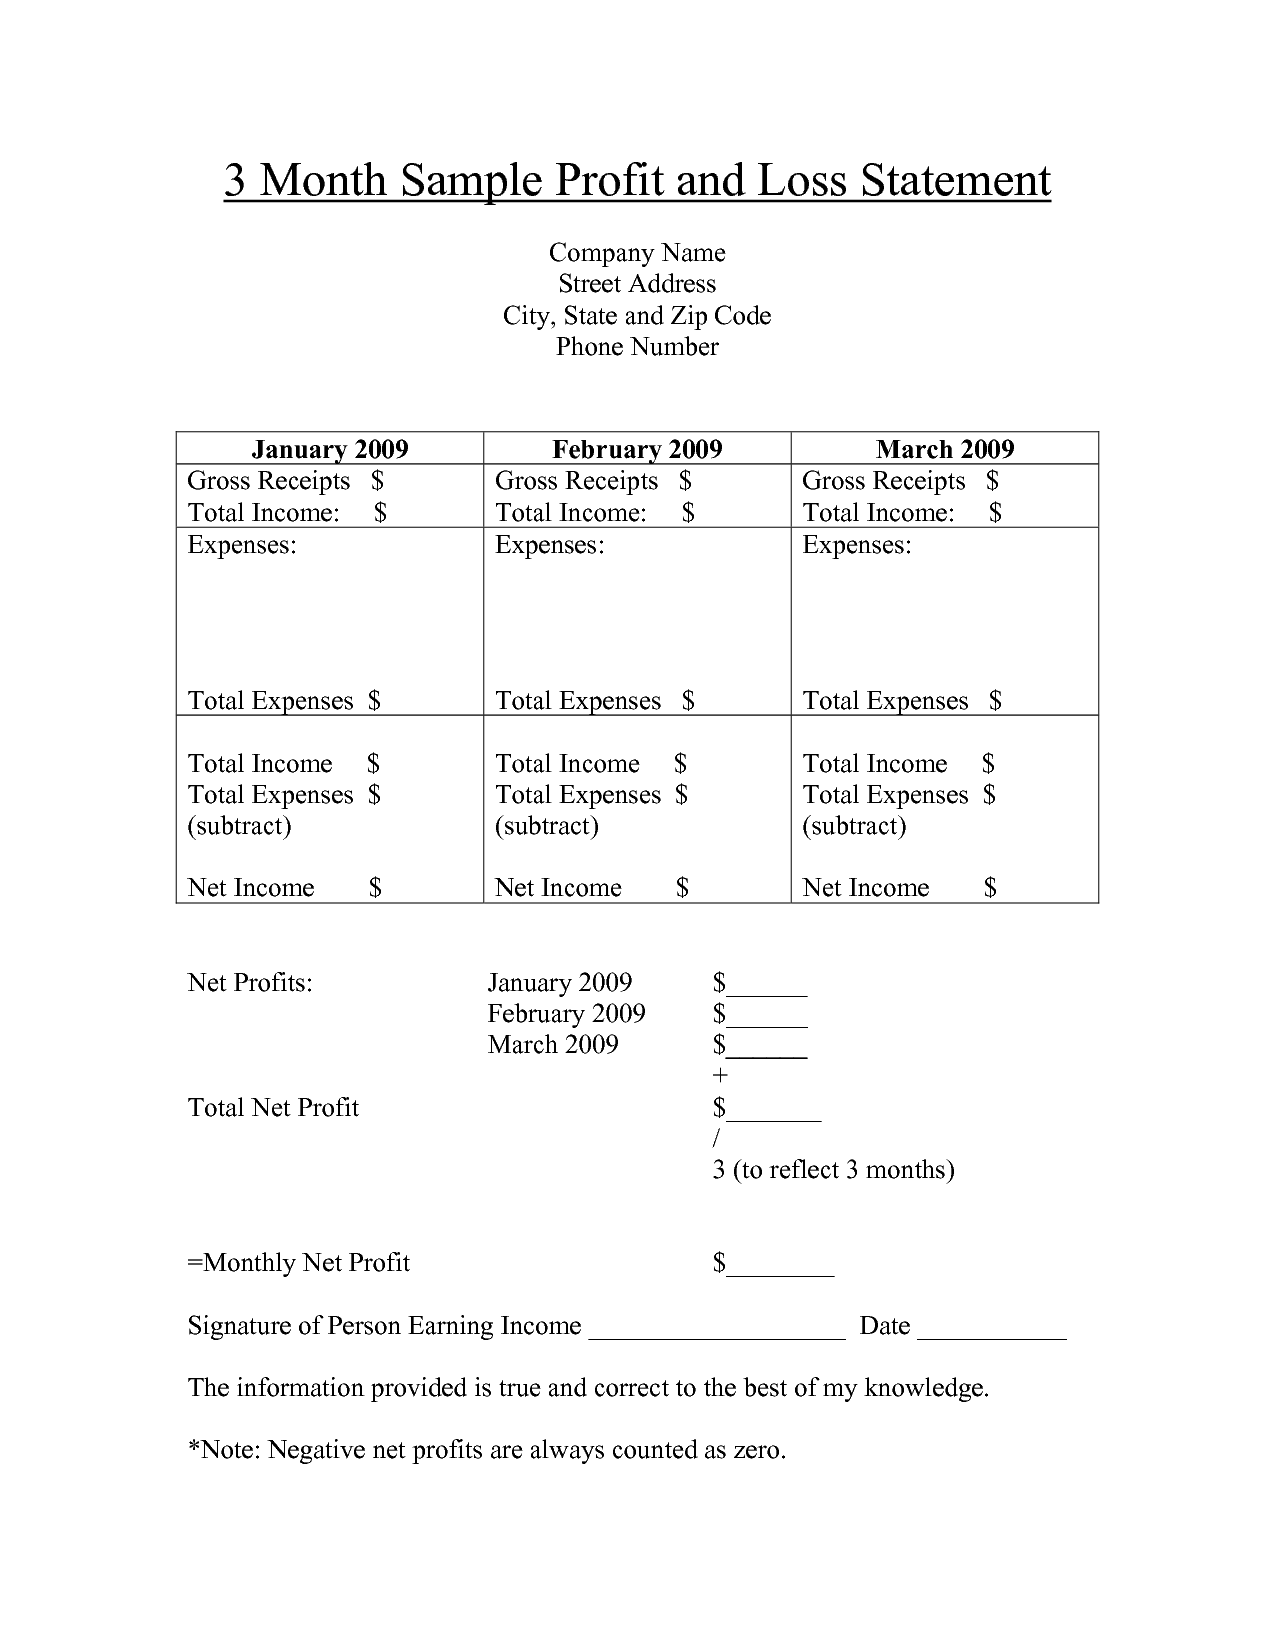 Free Printable Profit and Loss Statement Form for Home Care Bing – Profit and Loss Statement Example